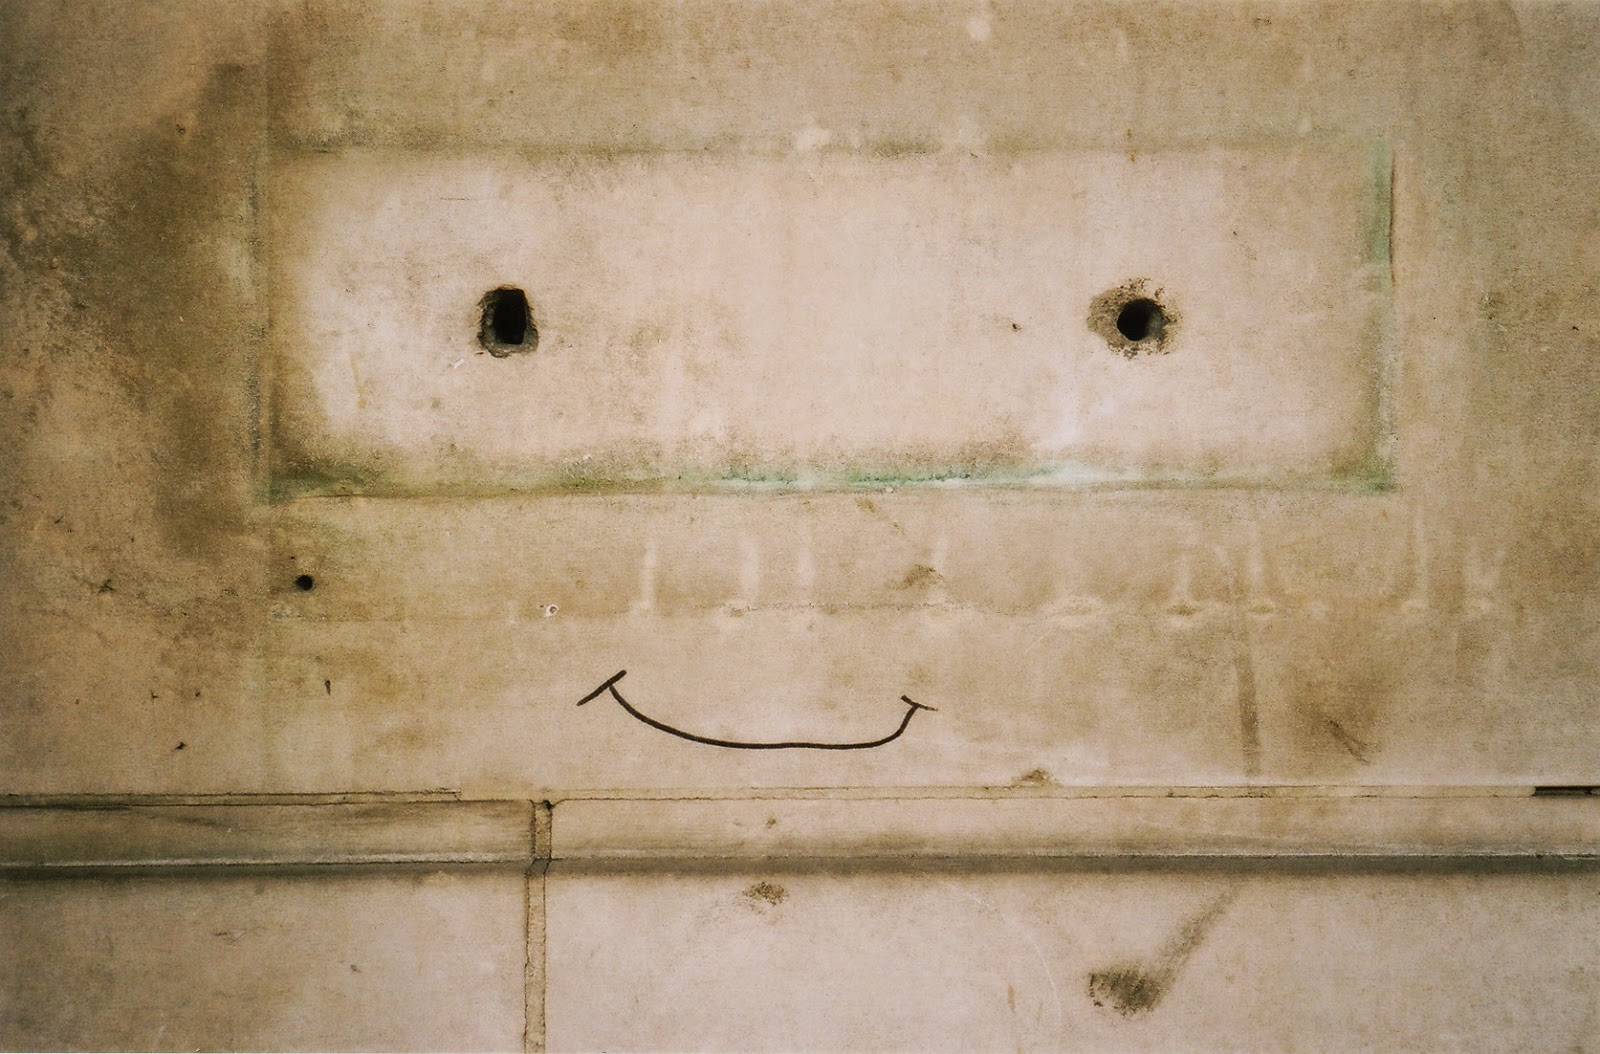 GRAFITTI, SMILEY FACE, LETTER PLATE,LONDON FIRE BRIGADE HEADQUARTERS, SOUTHBANK, LAMBETH BRIDGE, VAUXHALL, LONDON © VAC 100 DAYS 4 MILLION CONVERSATIONS